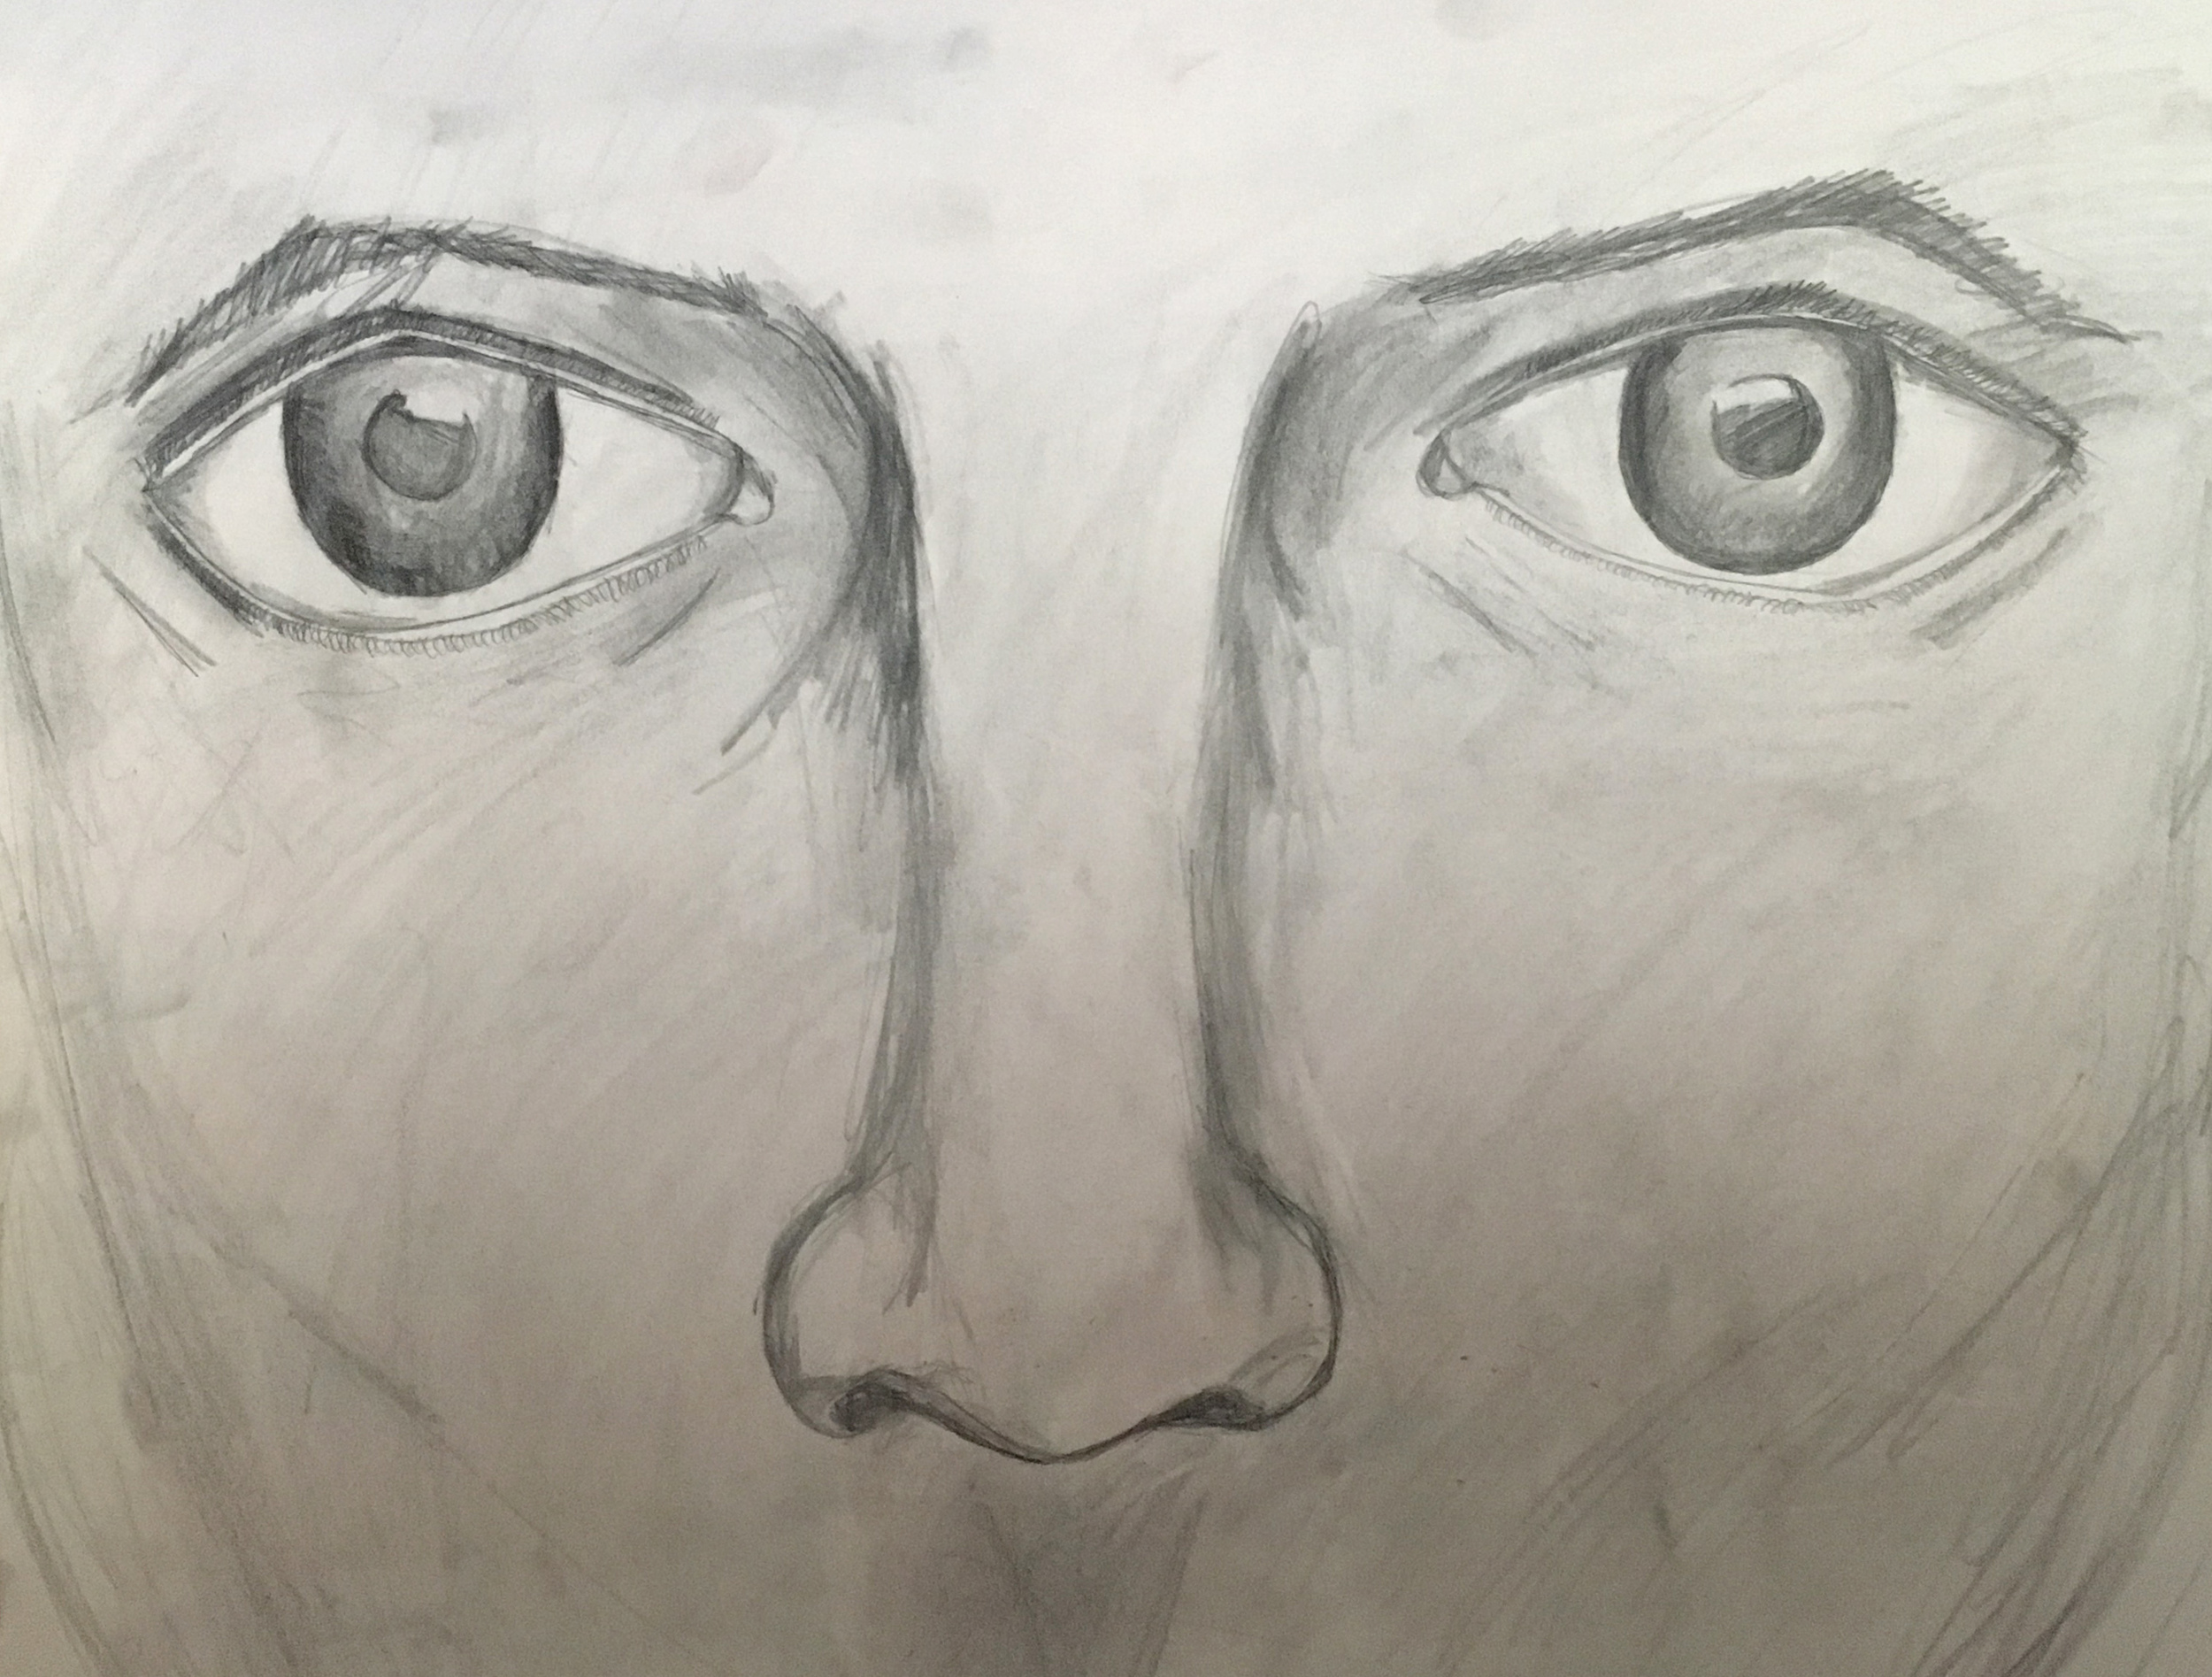 Eyes + Nose Study, Pencil, 11in x 17in